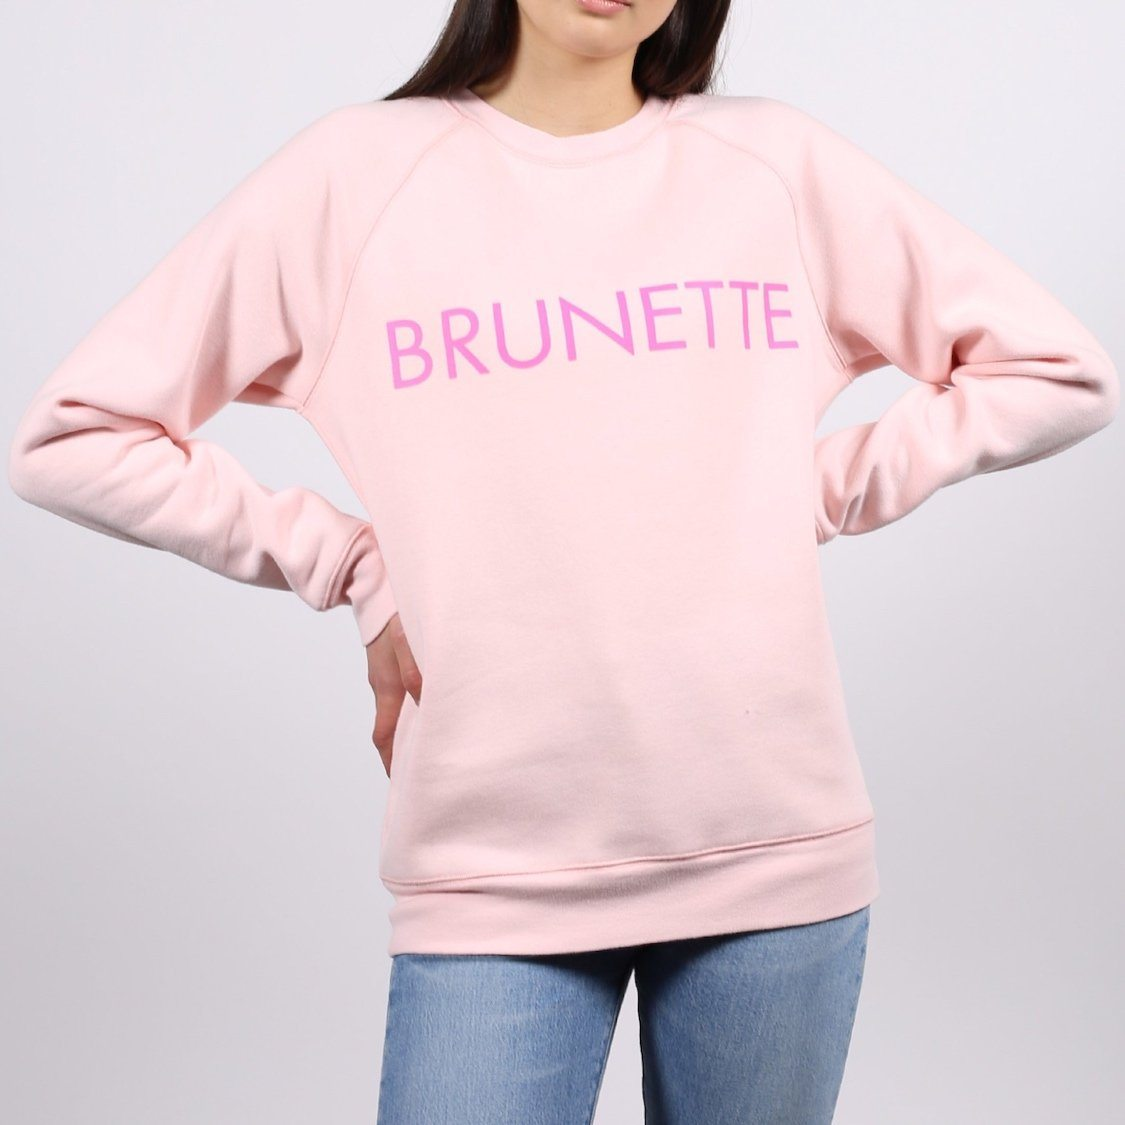 Brunette the Label - Brunette Ballet Slipper Crewneck Sweatshirt Sweatshirt Brunette the Label